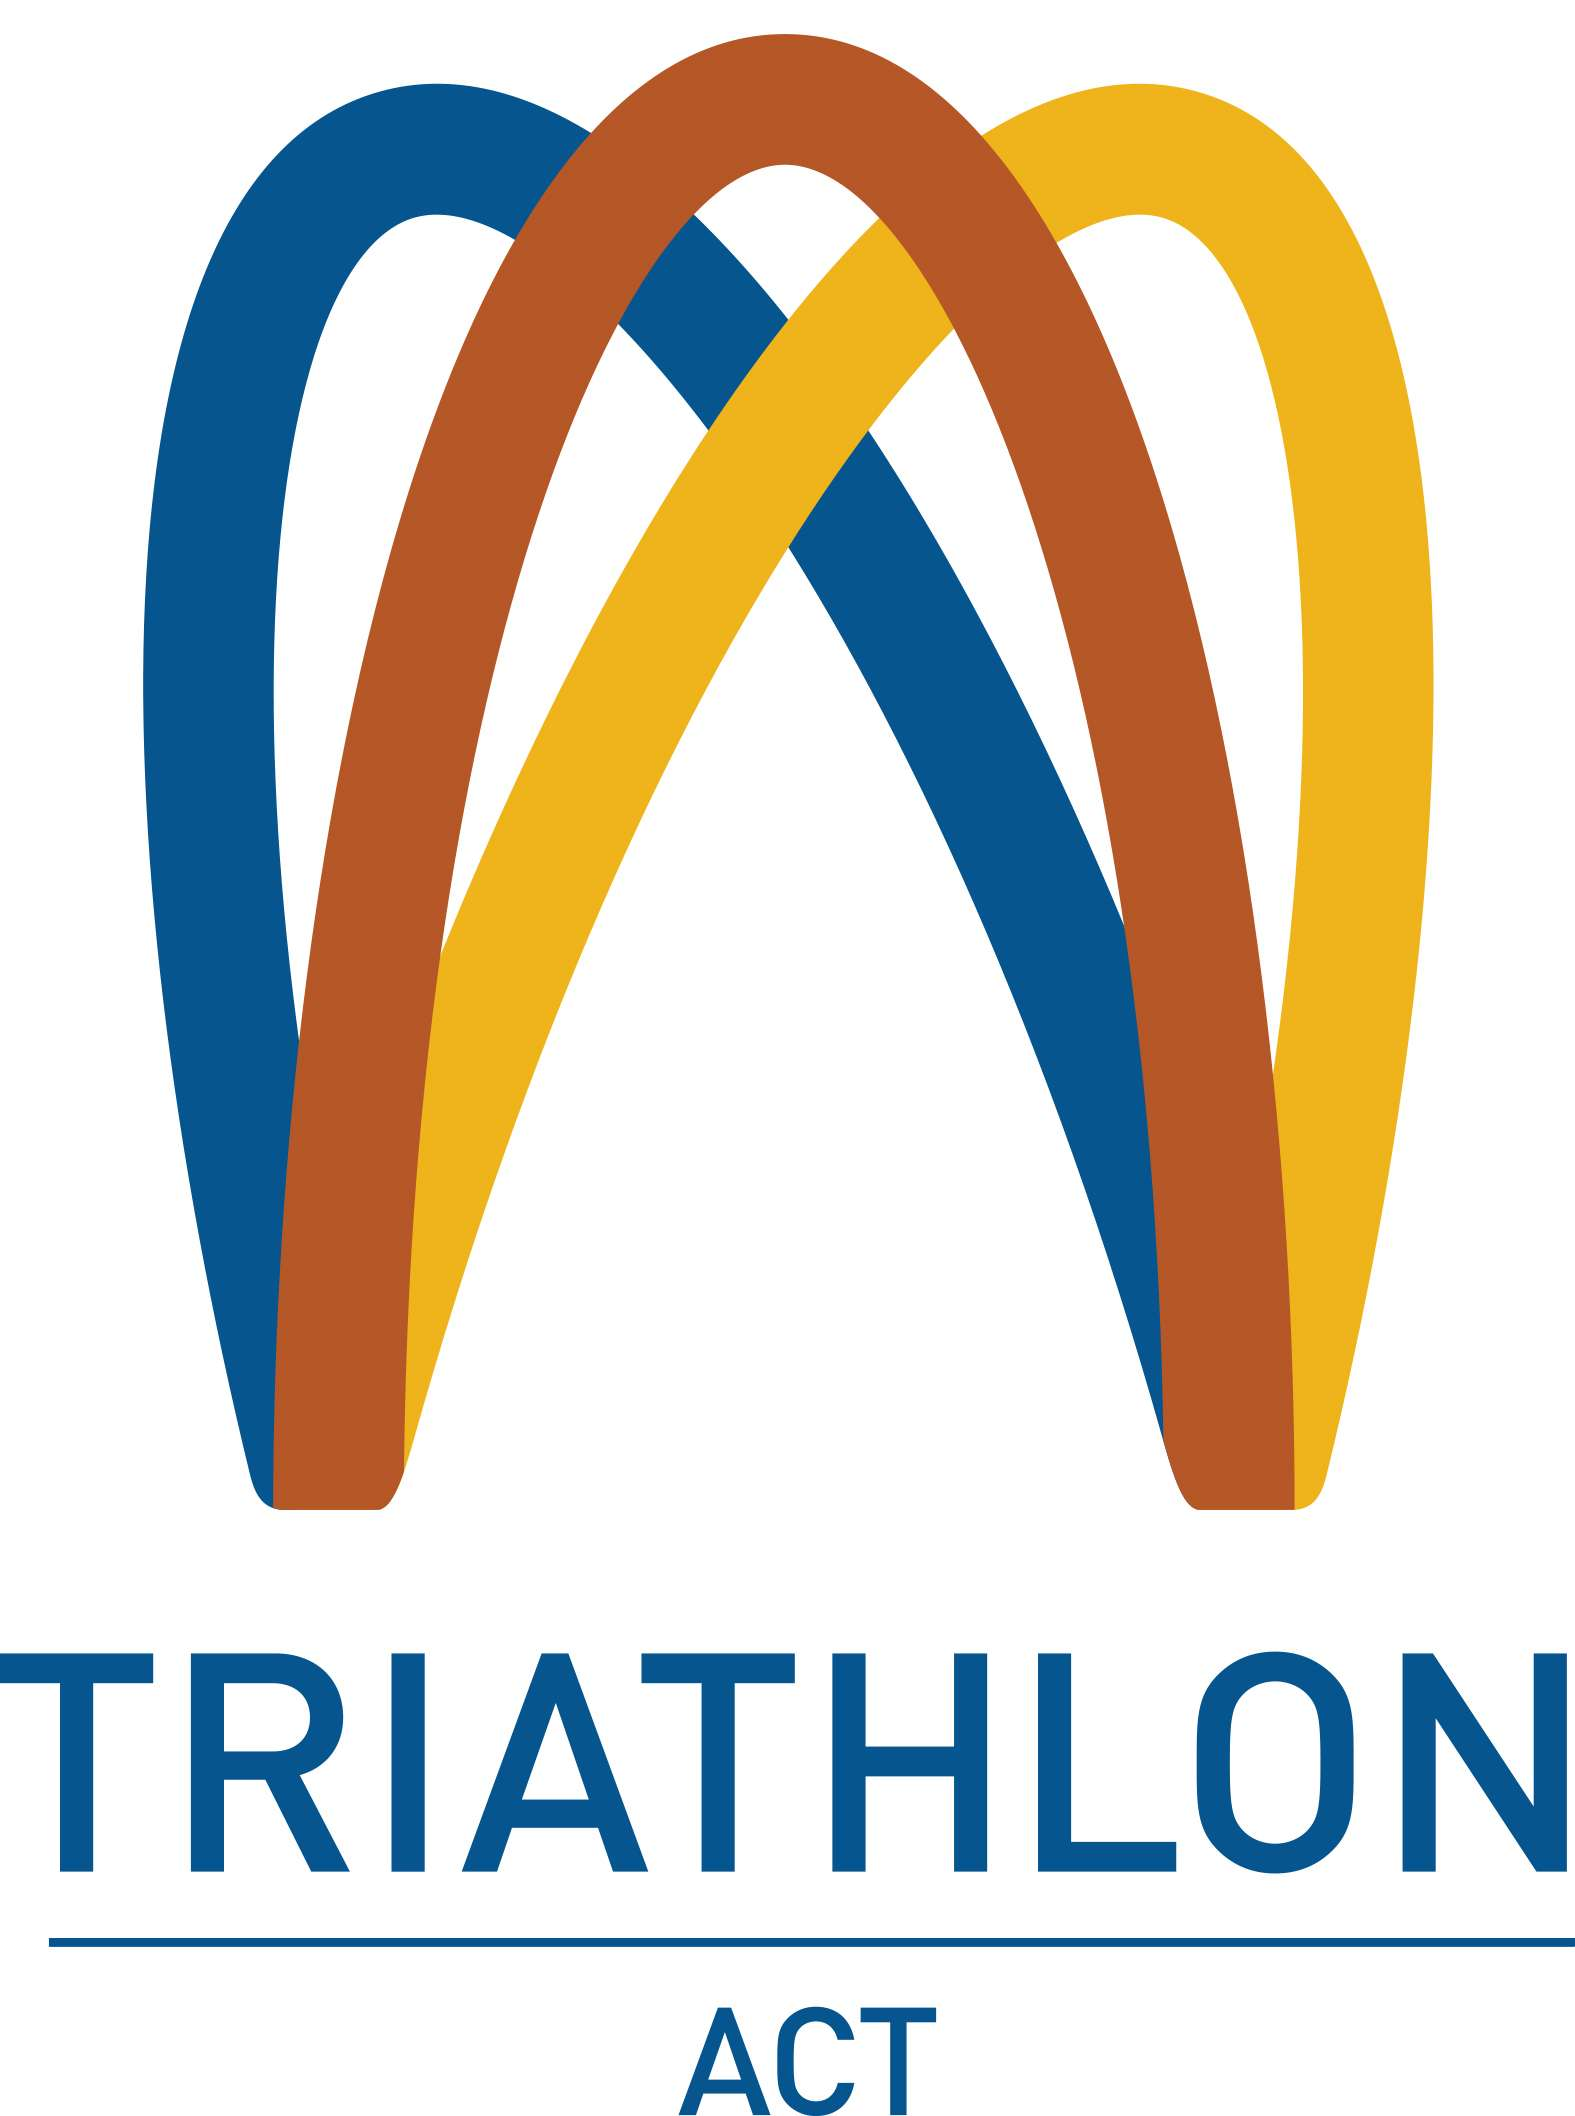 Triathlon ACT_Blue